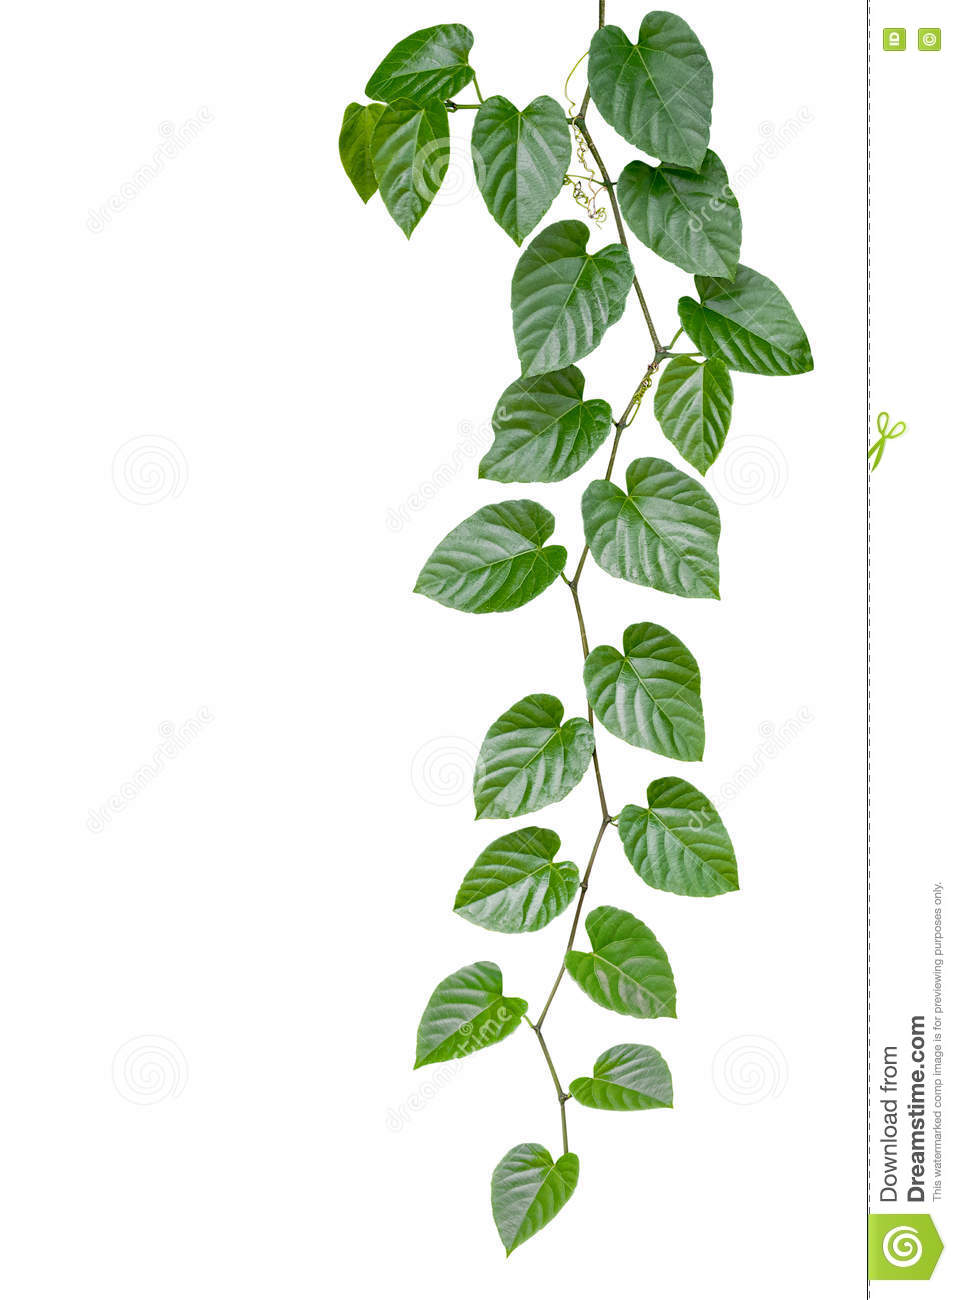 Heart shaped green leaves jungle vine isolated on white backgrou download heart shaped green leaves jungle vine isolated on white backgrou stock image image of mightylinksfo